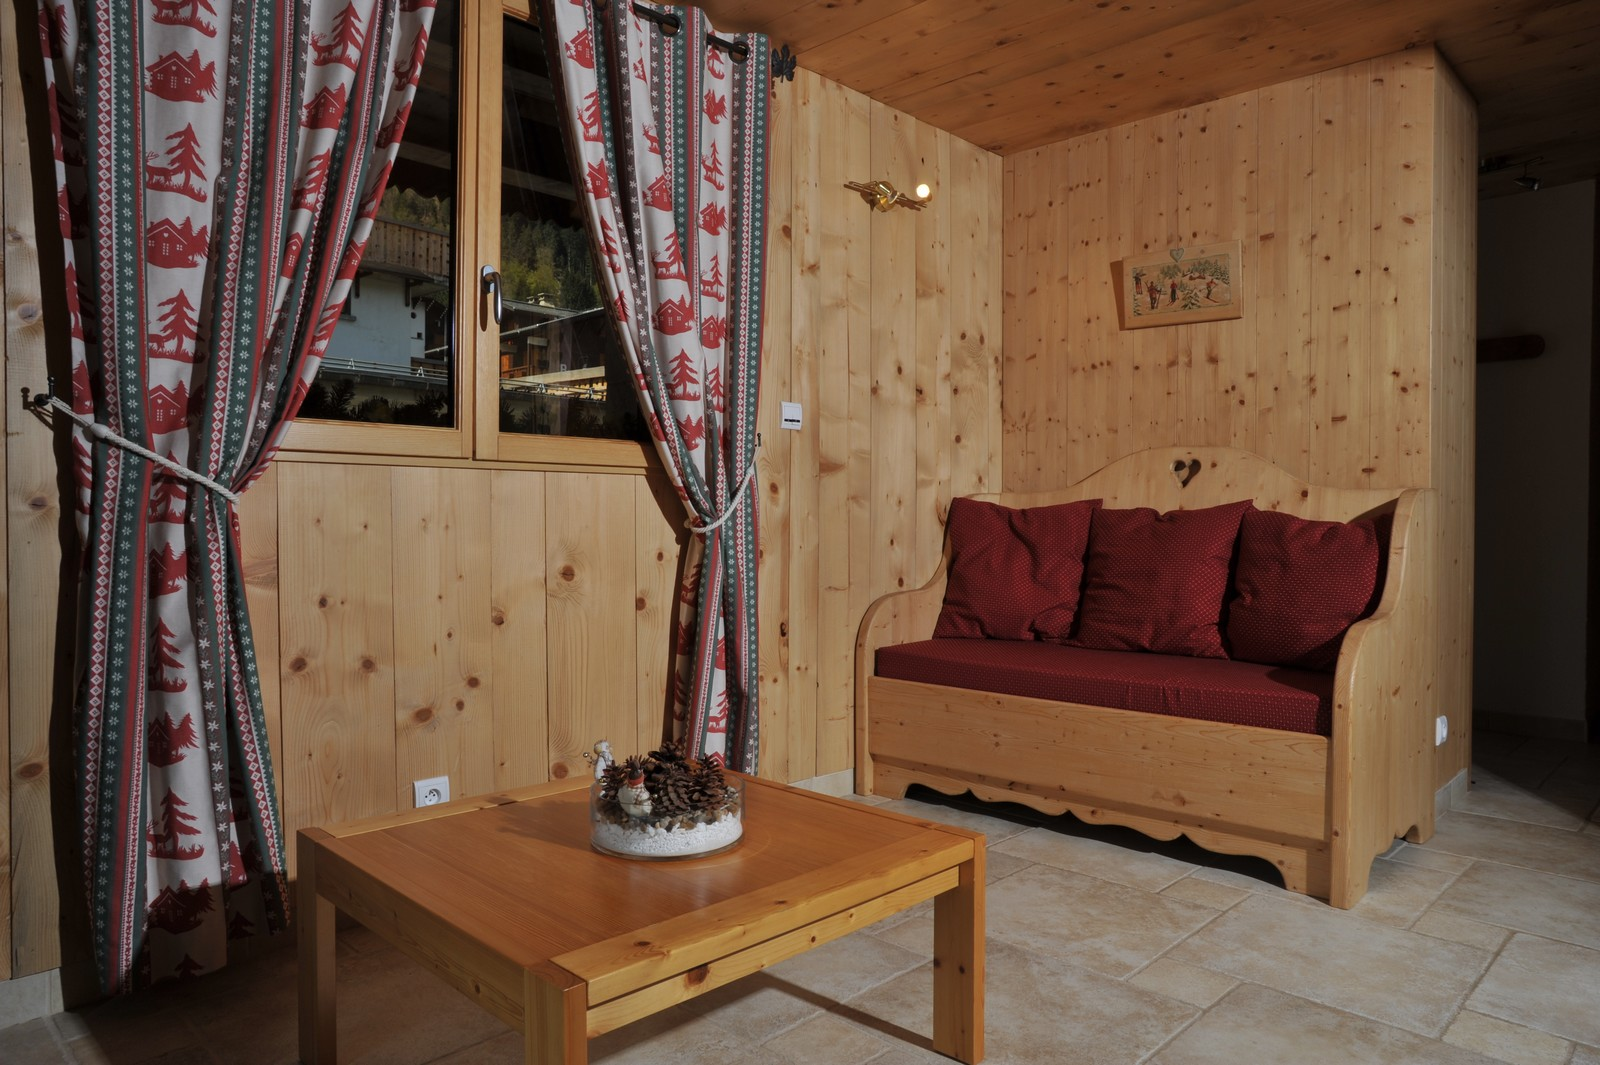 La Torvale - Appartements de charme - Morzine France: Appartement ...